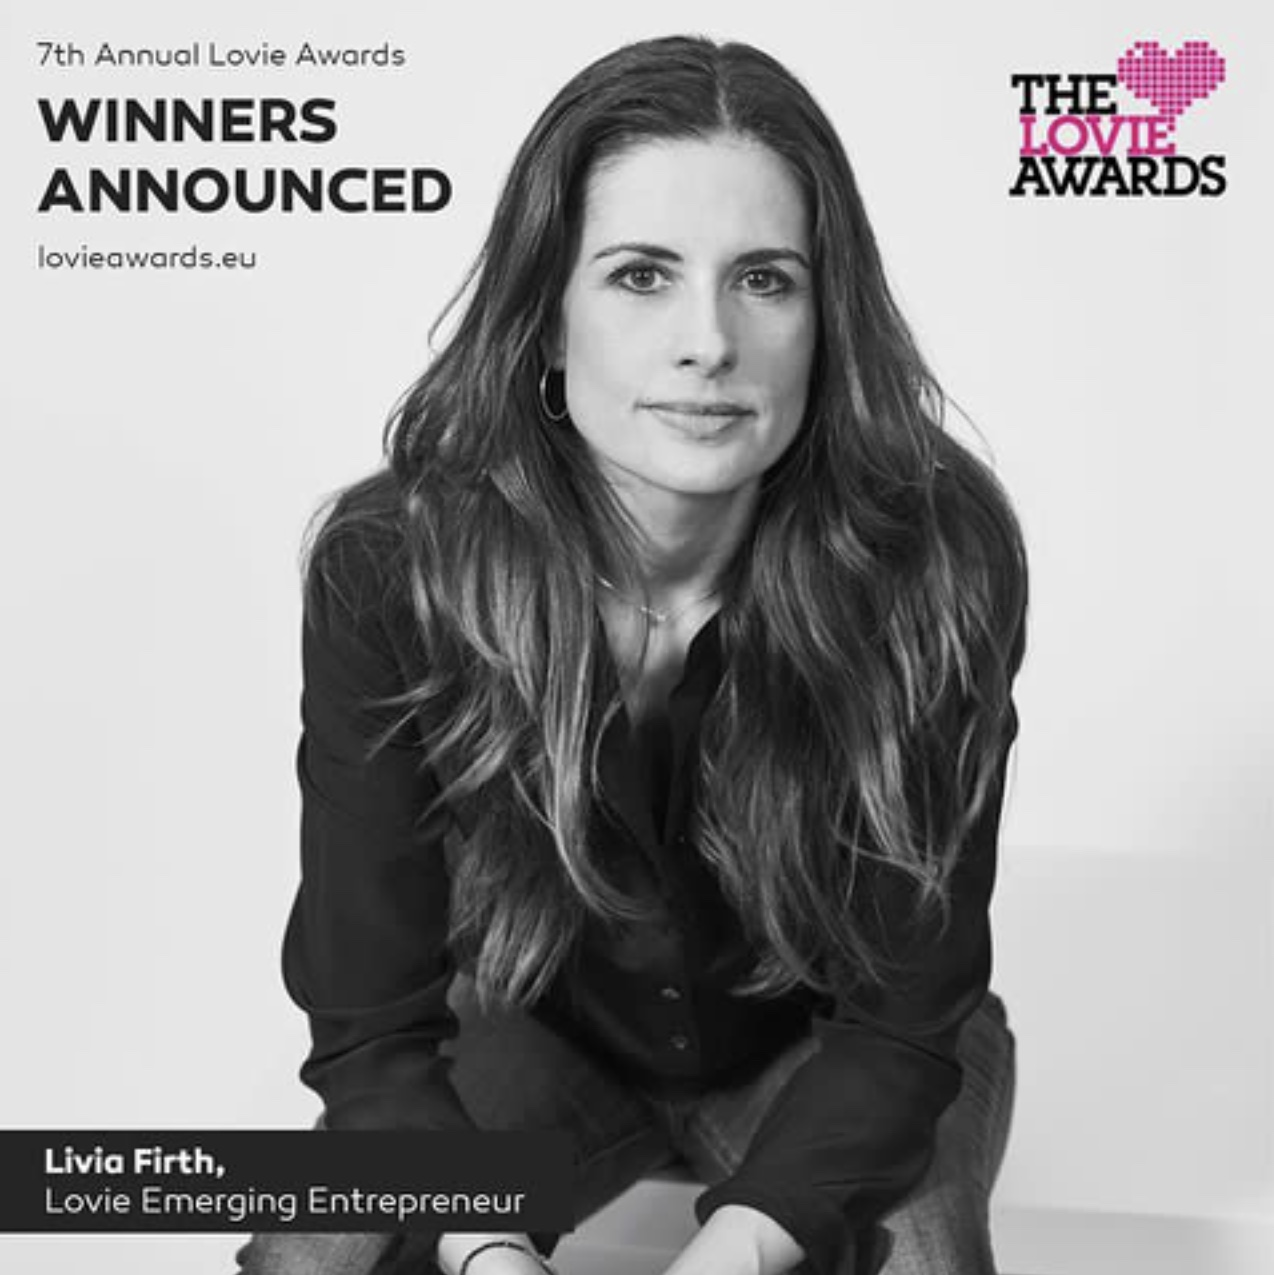 Livia Firth honored at the 2017 Lovie Awards / Photo: @thelovieawards